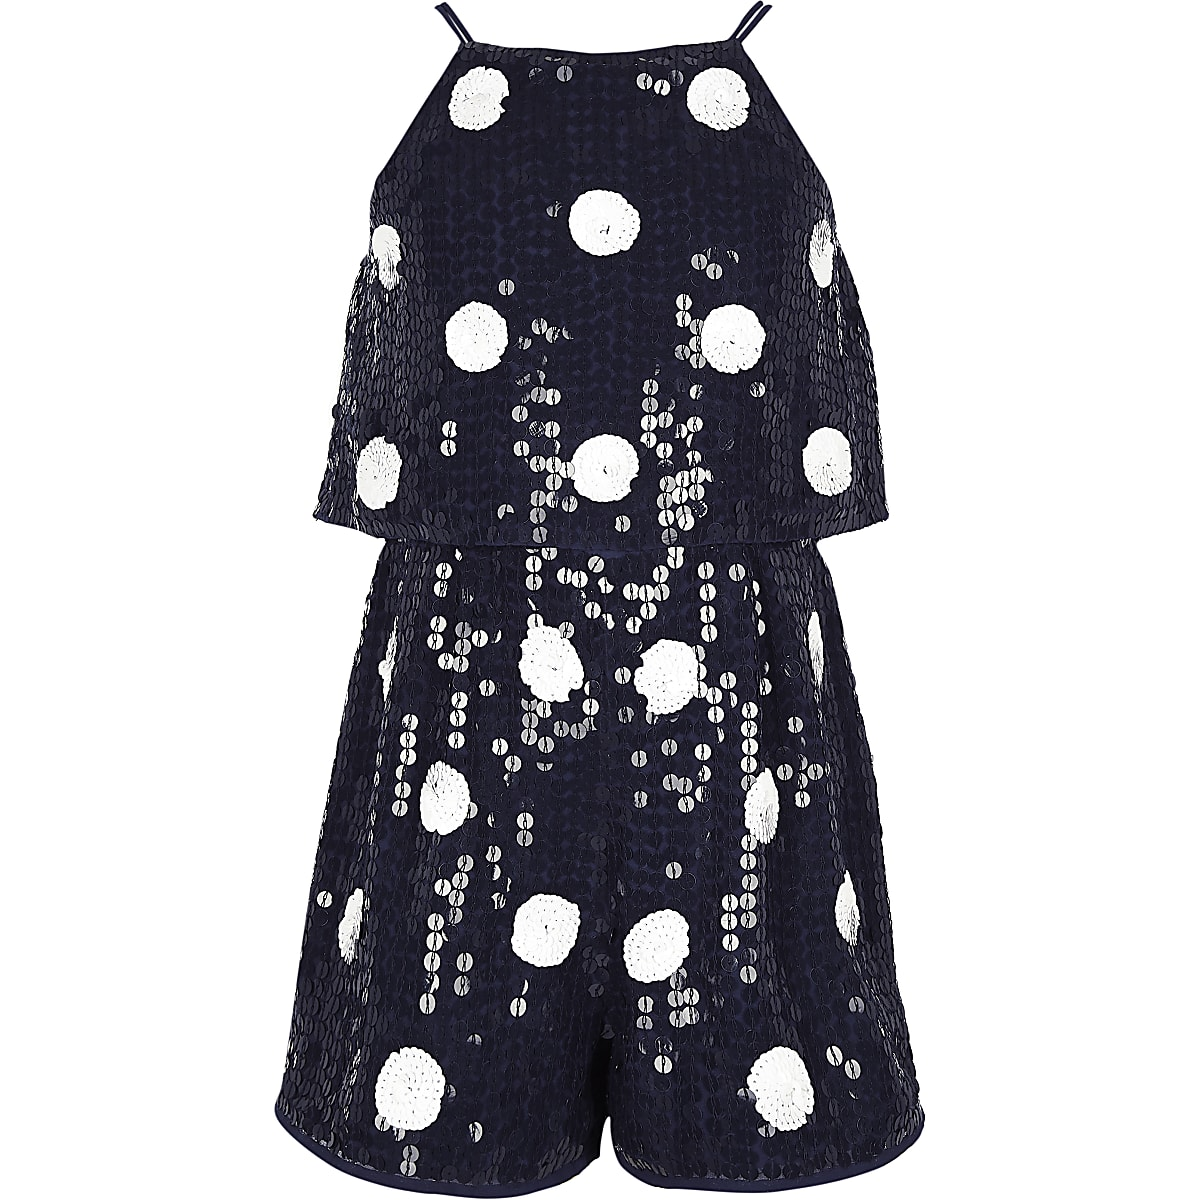 Girls navy polka dot sequin romper